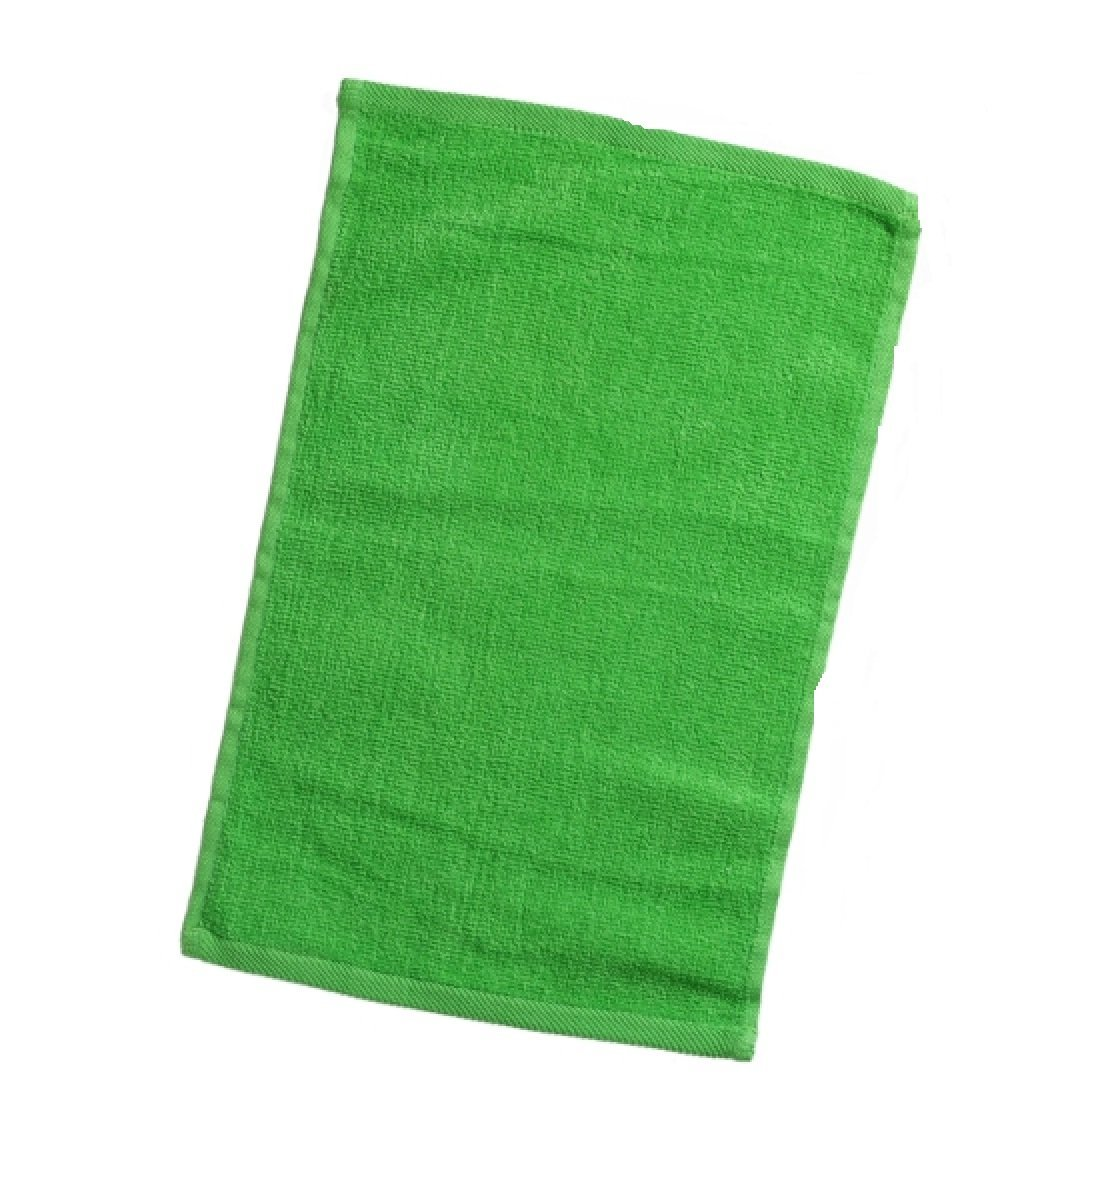 """LIME COLOR Terry Velour Hand Towels 100% Cotton, 11""""x18"""", Hemmed Fingertip Towel, Sport Towel Terry Velour Hemmed Towels by Georgiabags (6, LIME)"""